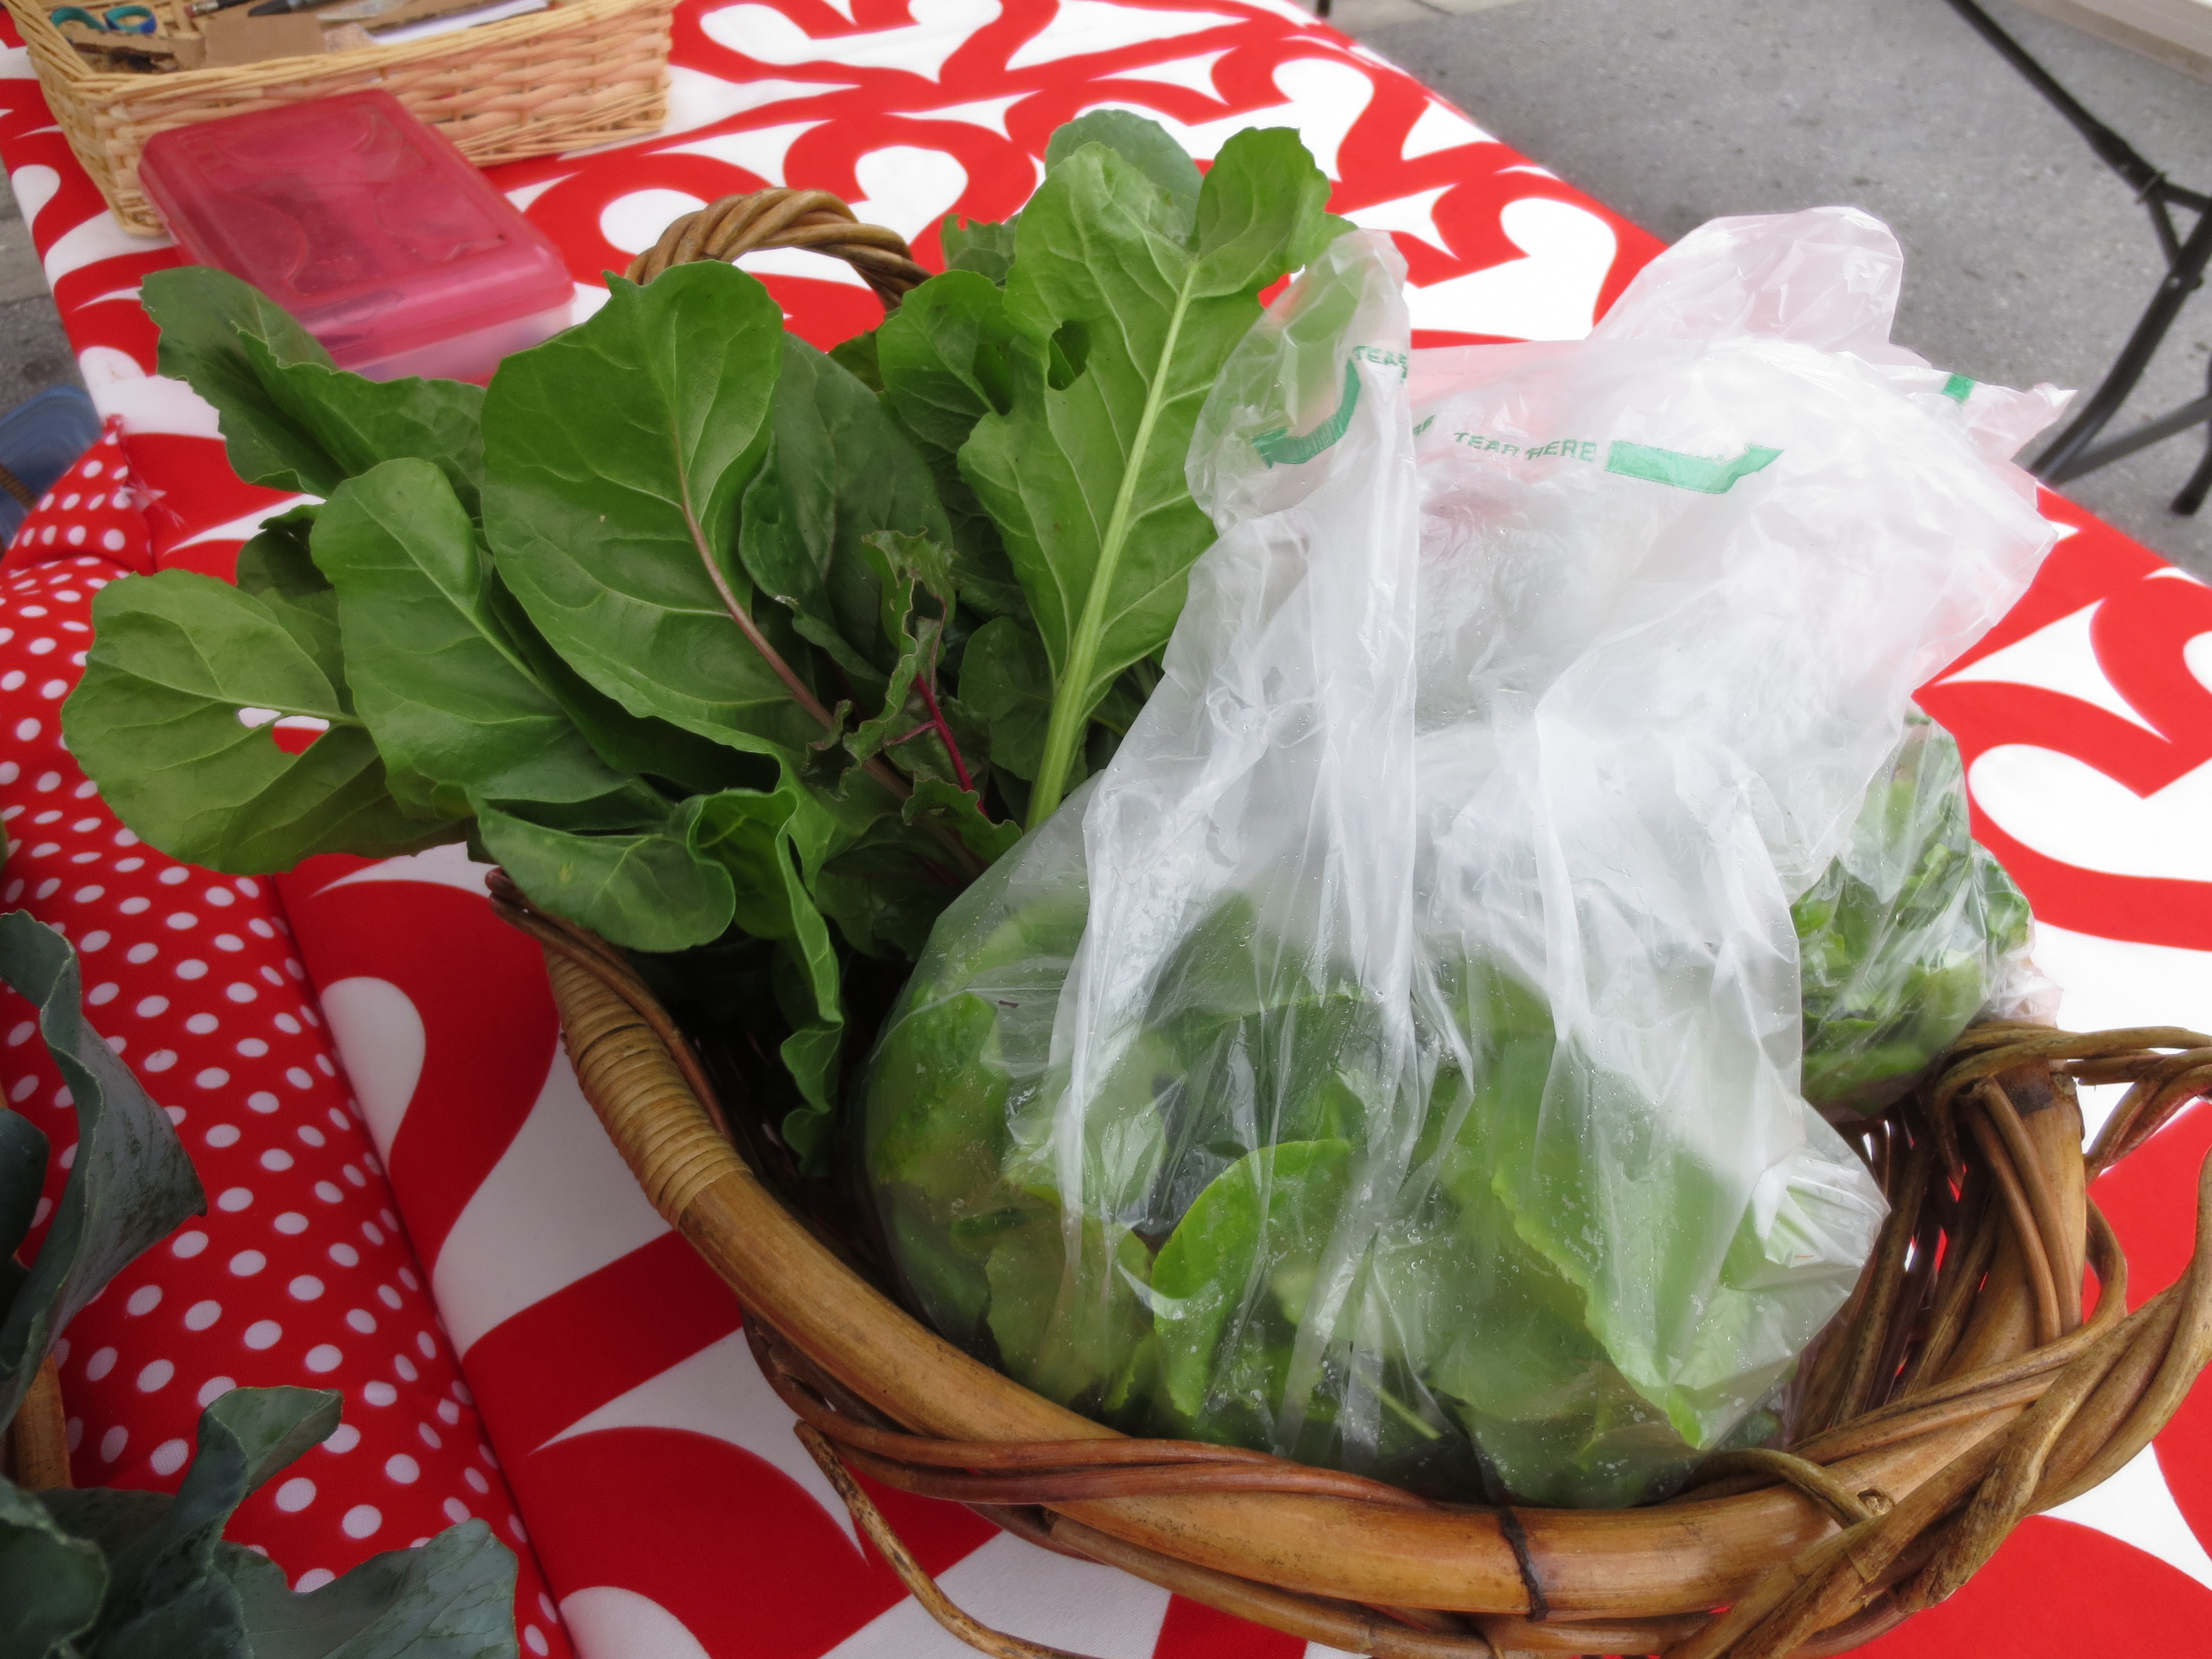 Our swiss chard and let